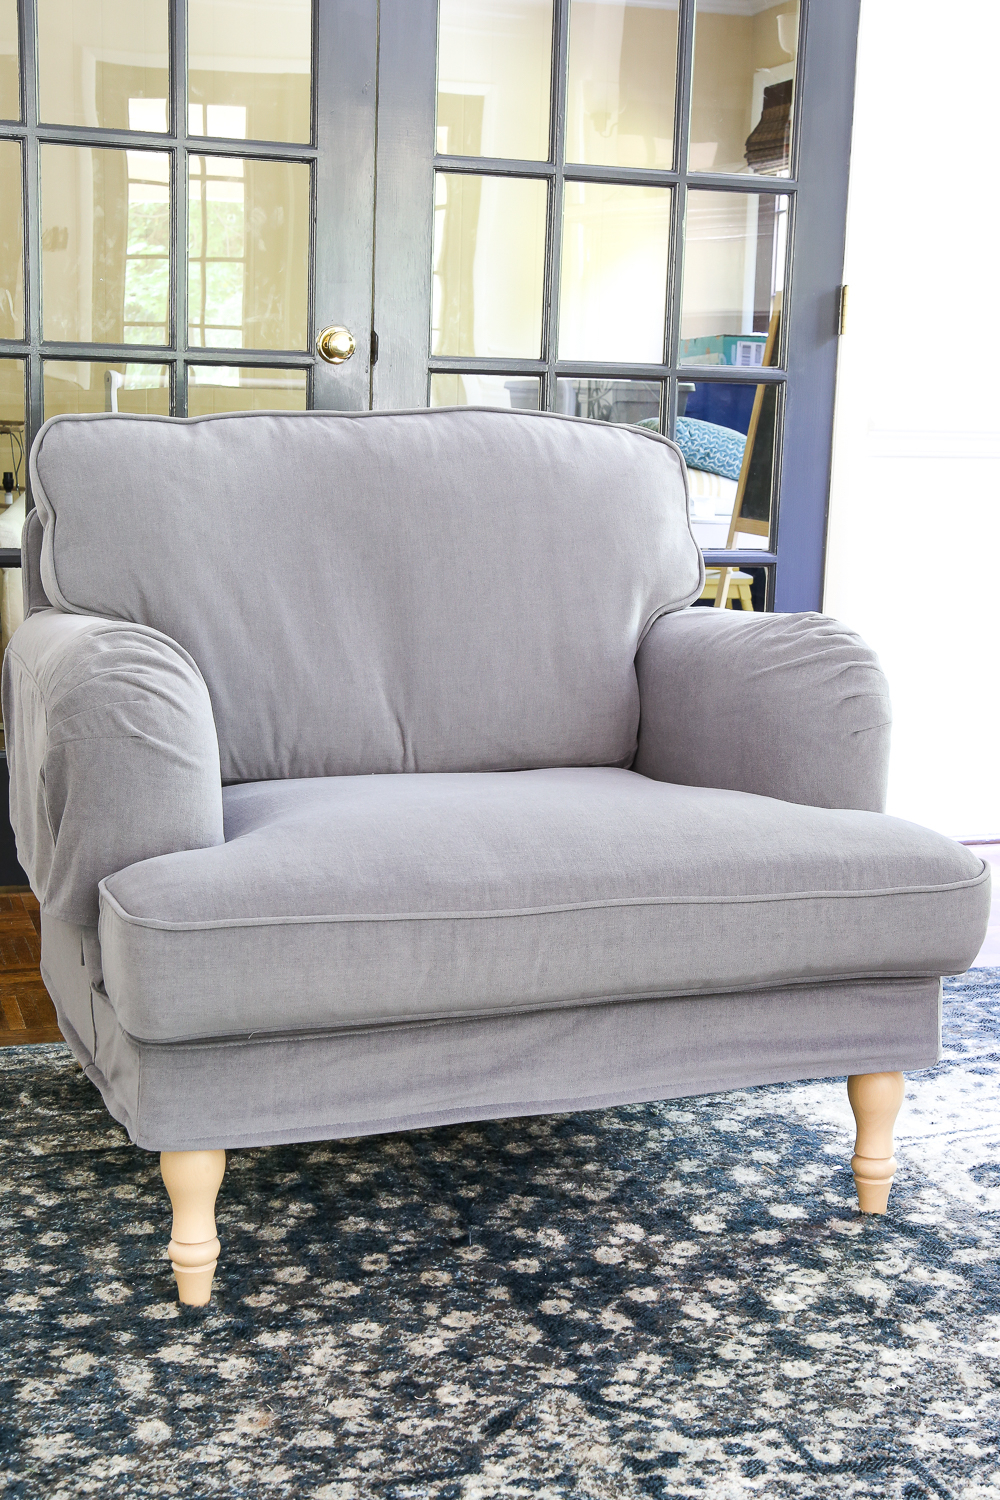 Ikea's New Sofa And Chairs And How To Keep Them Clean – Bless'er House With Regard To Ikea Sofa Chairs (Image 16 of 25)